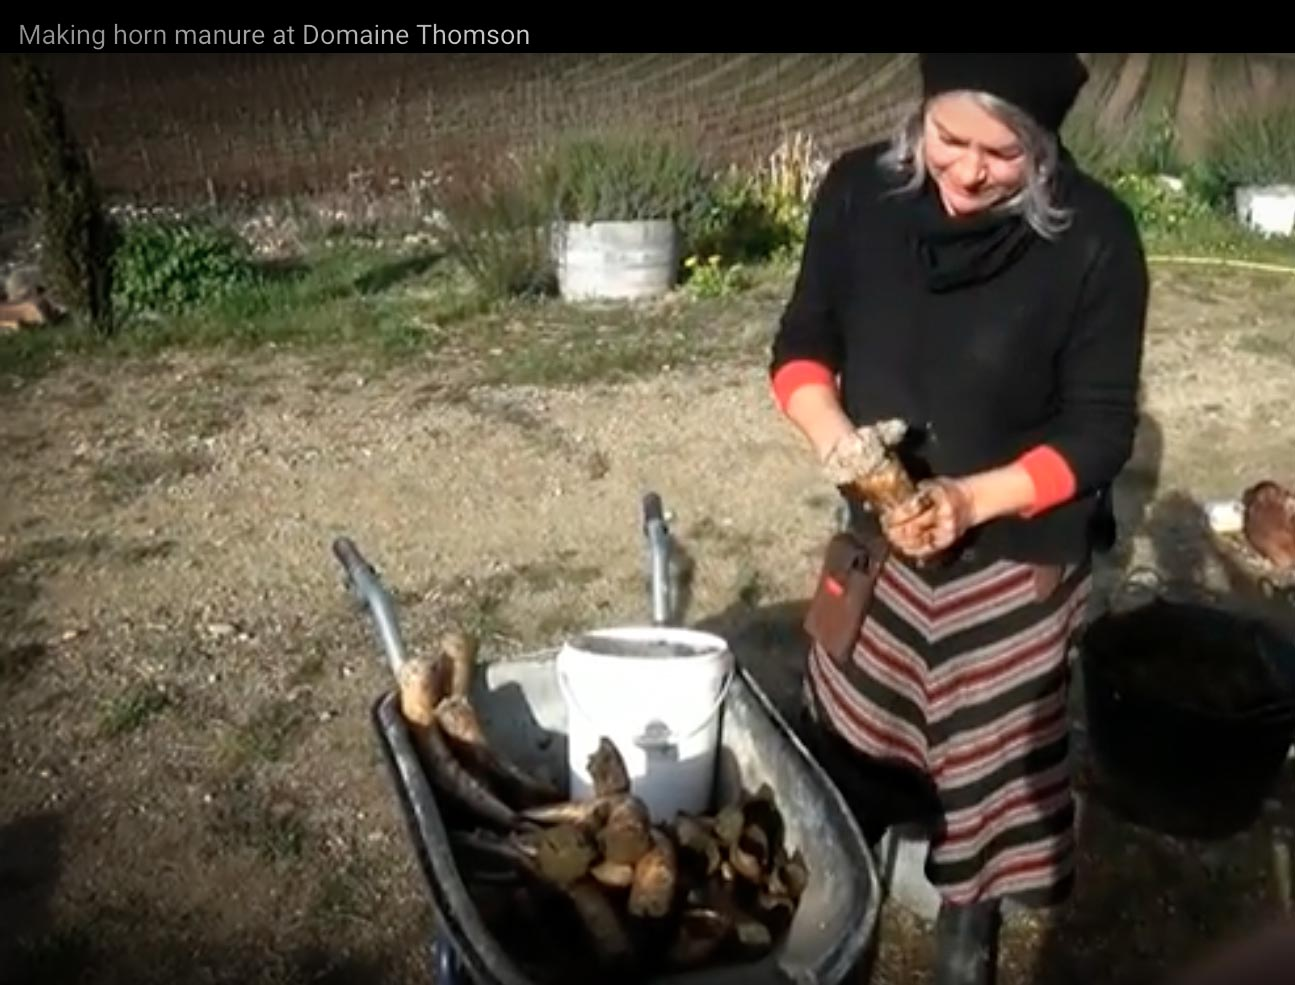 Su Hoskin at Domaine Thomson, Central Otago, New Zealand, demonstrates how to make biodynamic horn manure